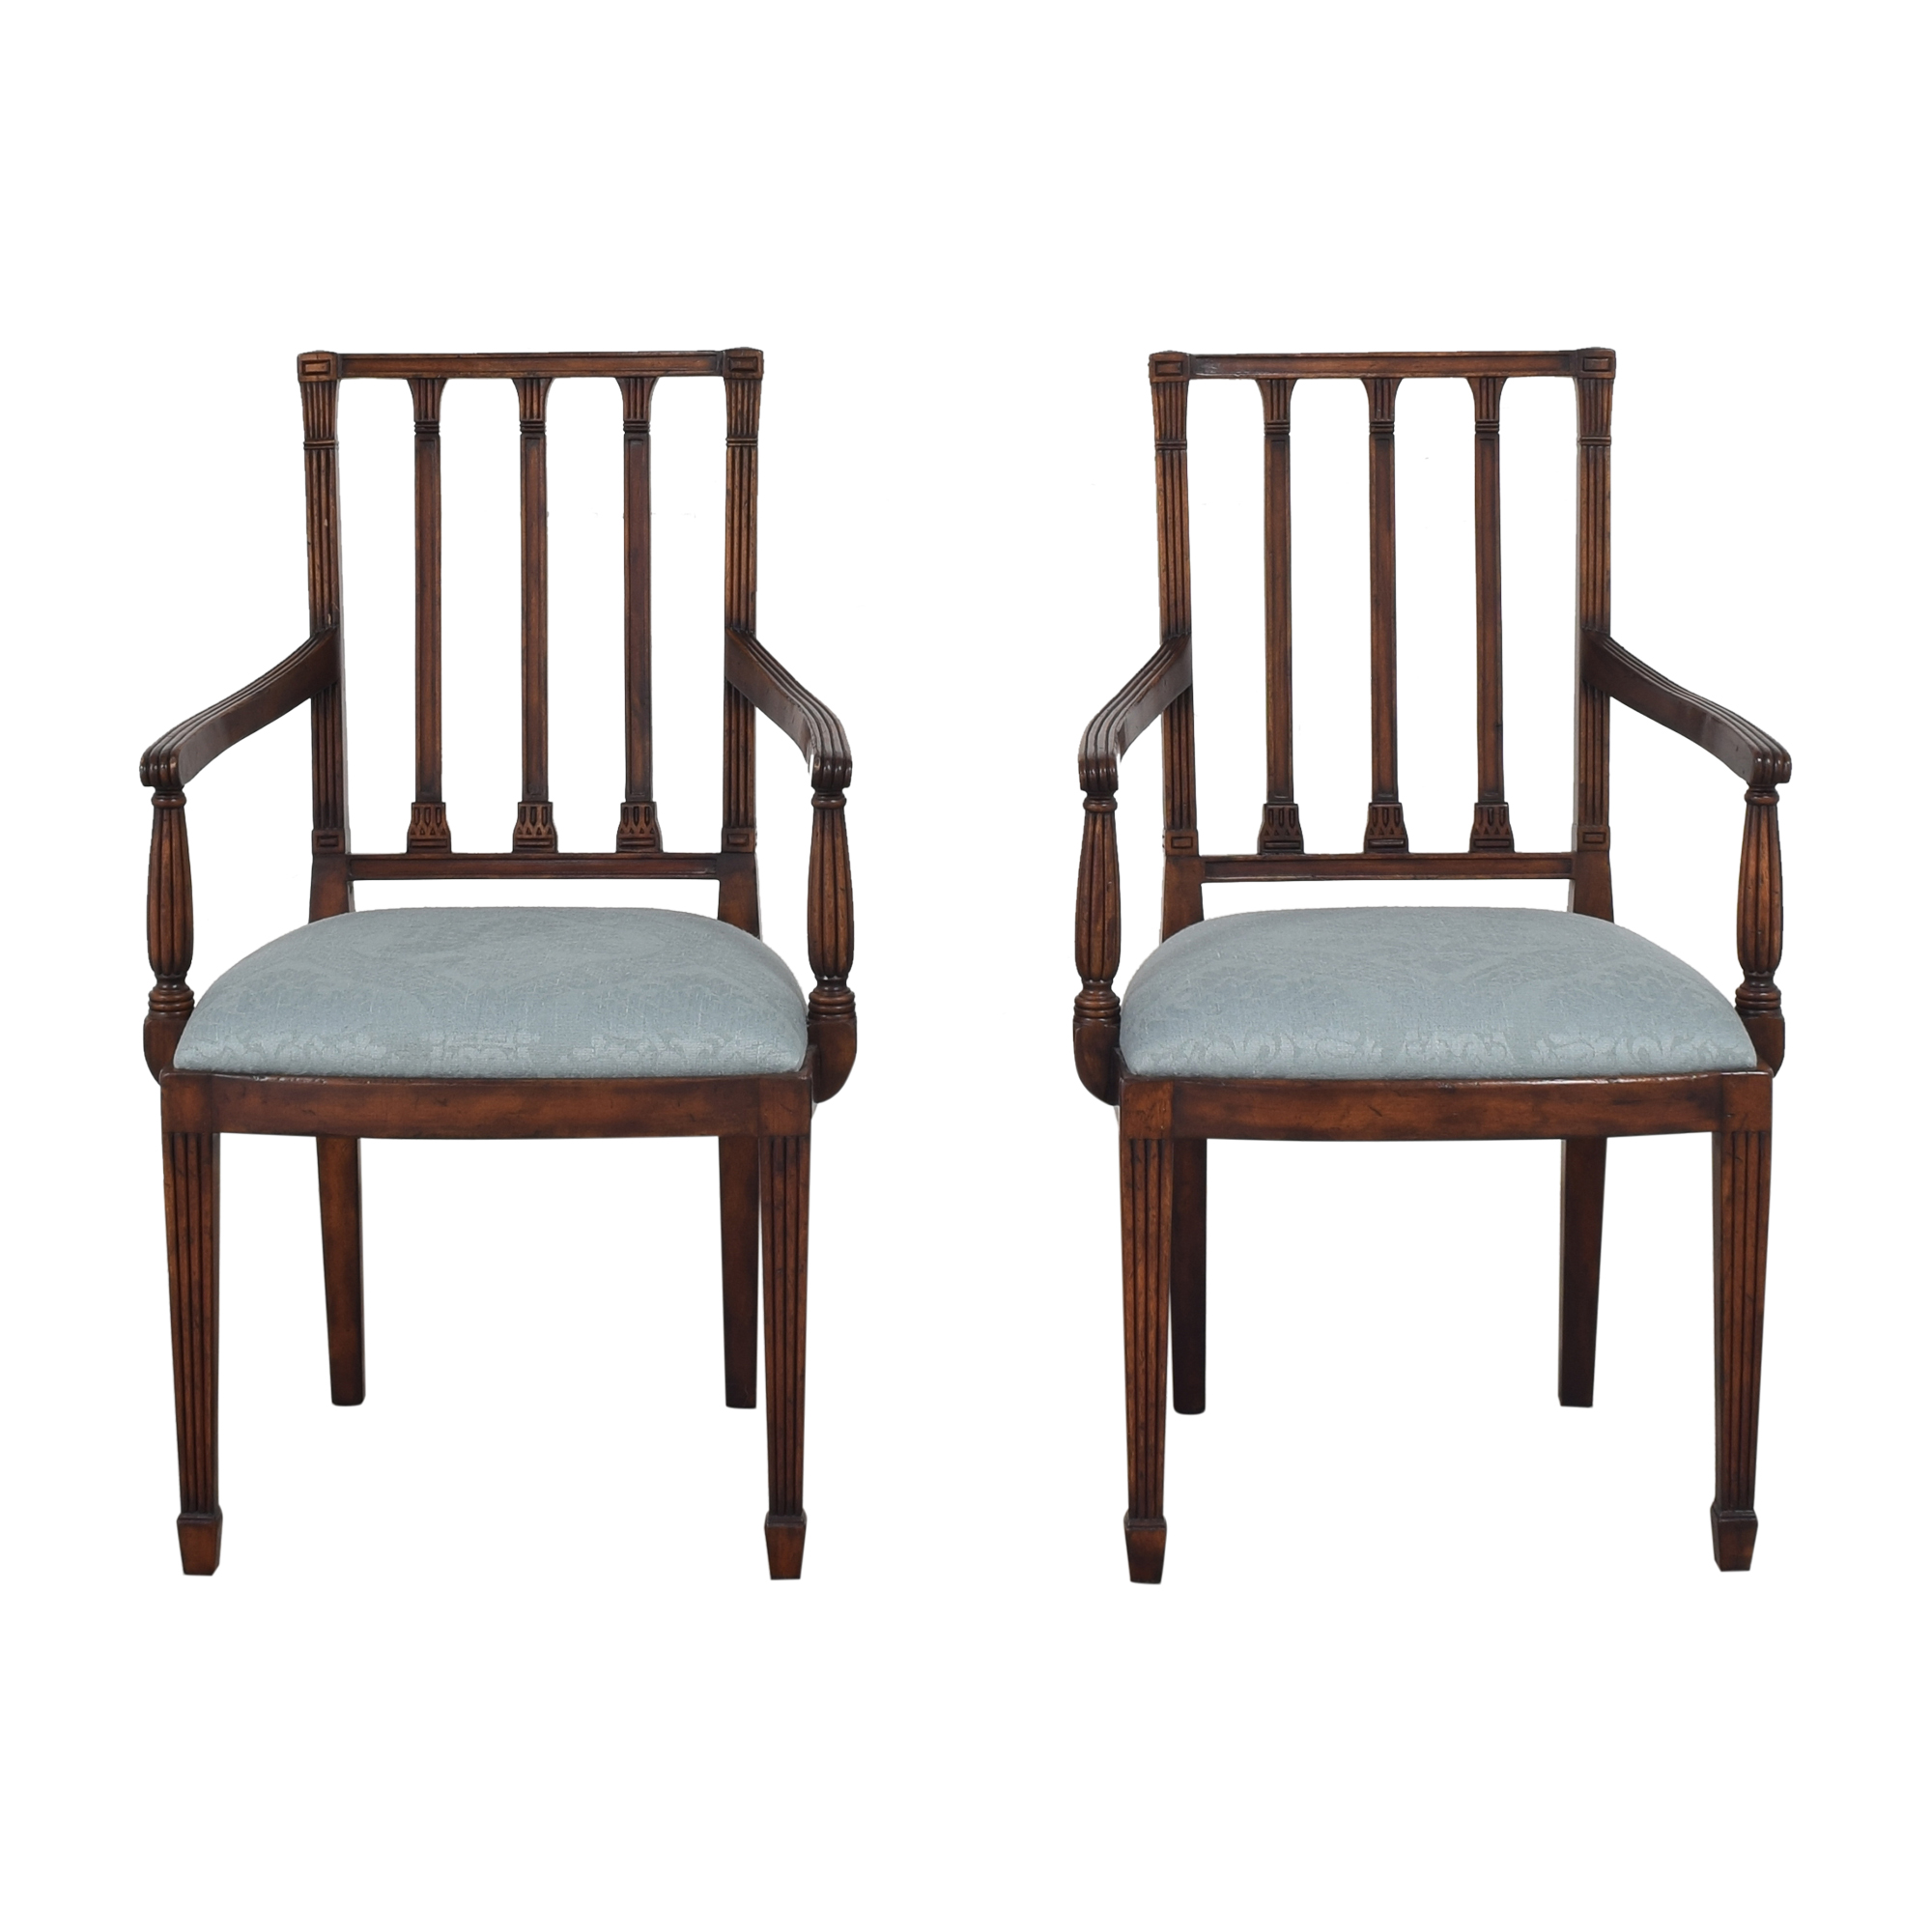 English Country Home English Country Home Upholstered Dining Arm Chairs dark brown and light blue